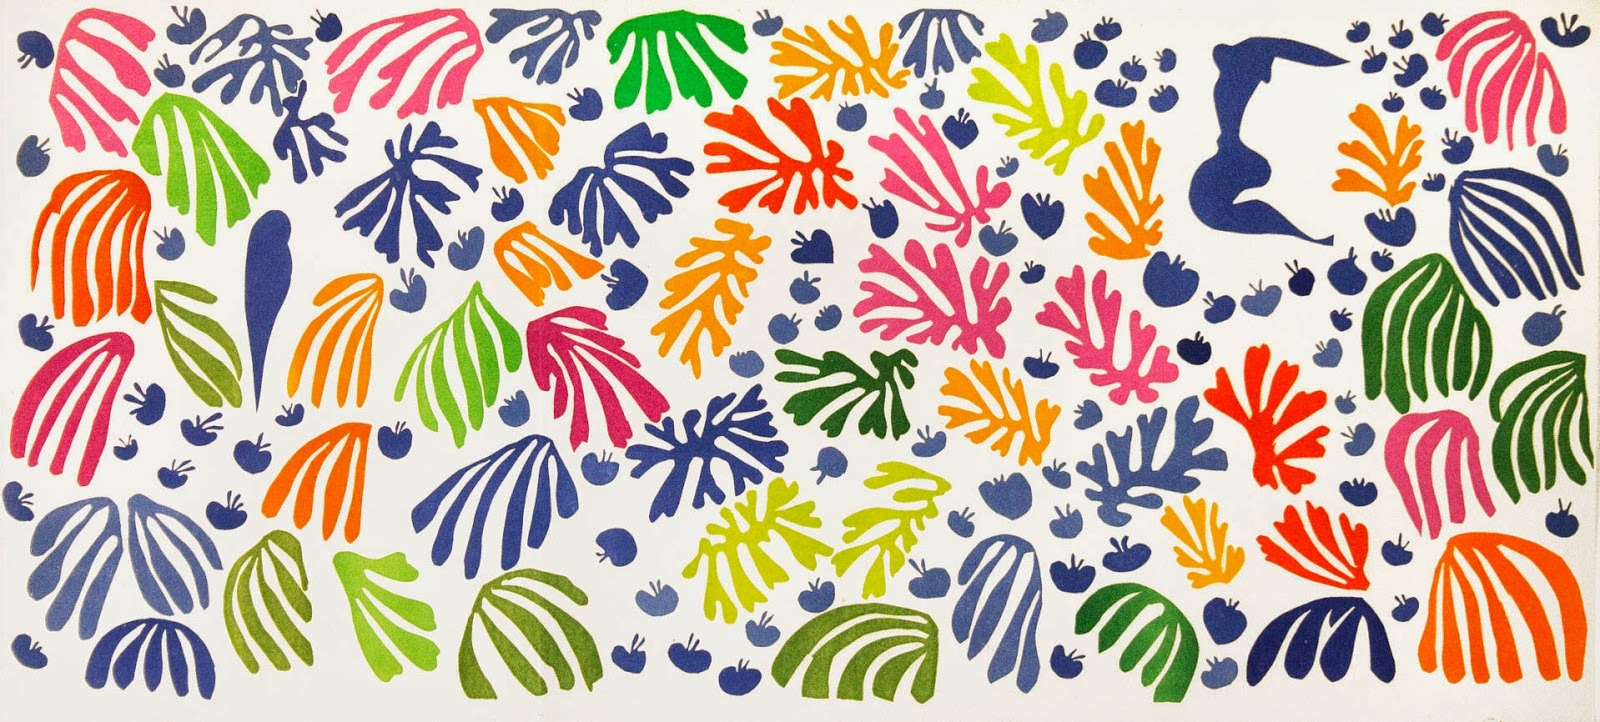 Teaching Art History to Preschoolers can be engaging and full of process art invitations. Check out our favorite art activities inspired by Henri Matisse